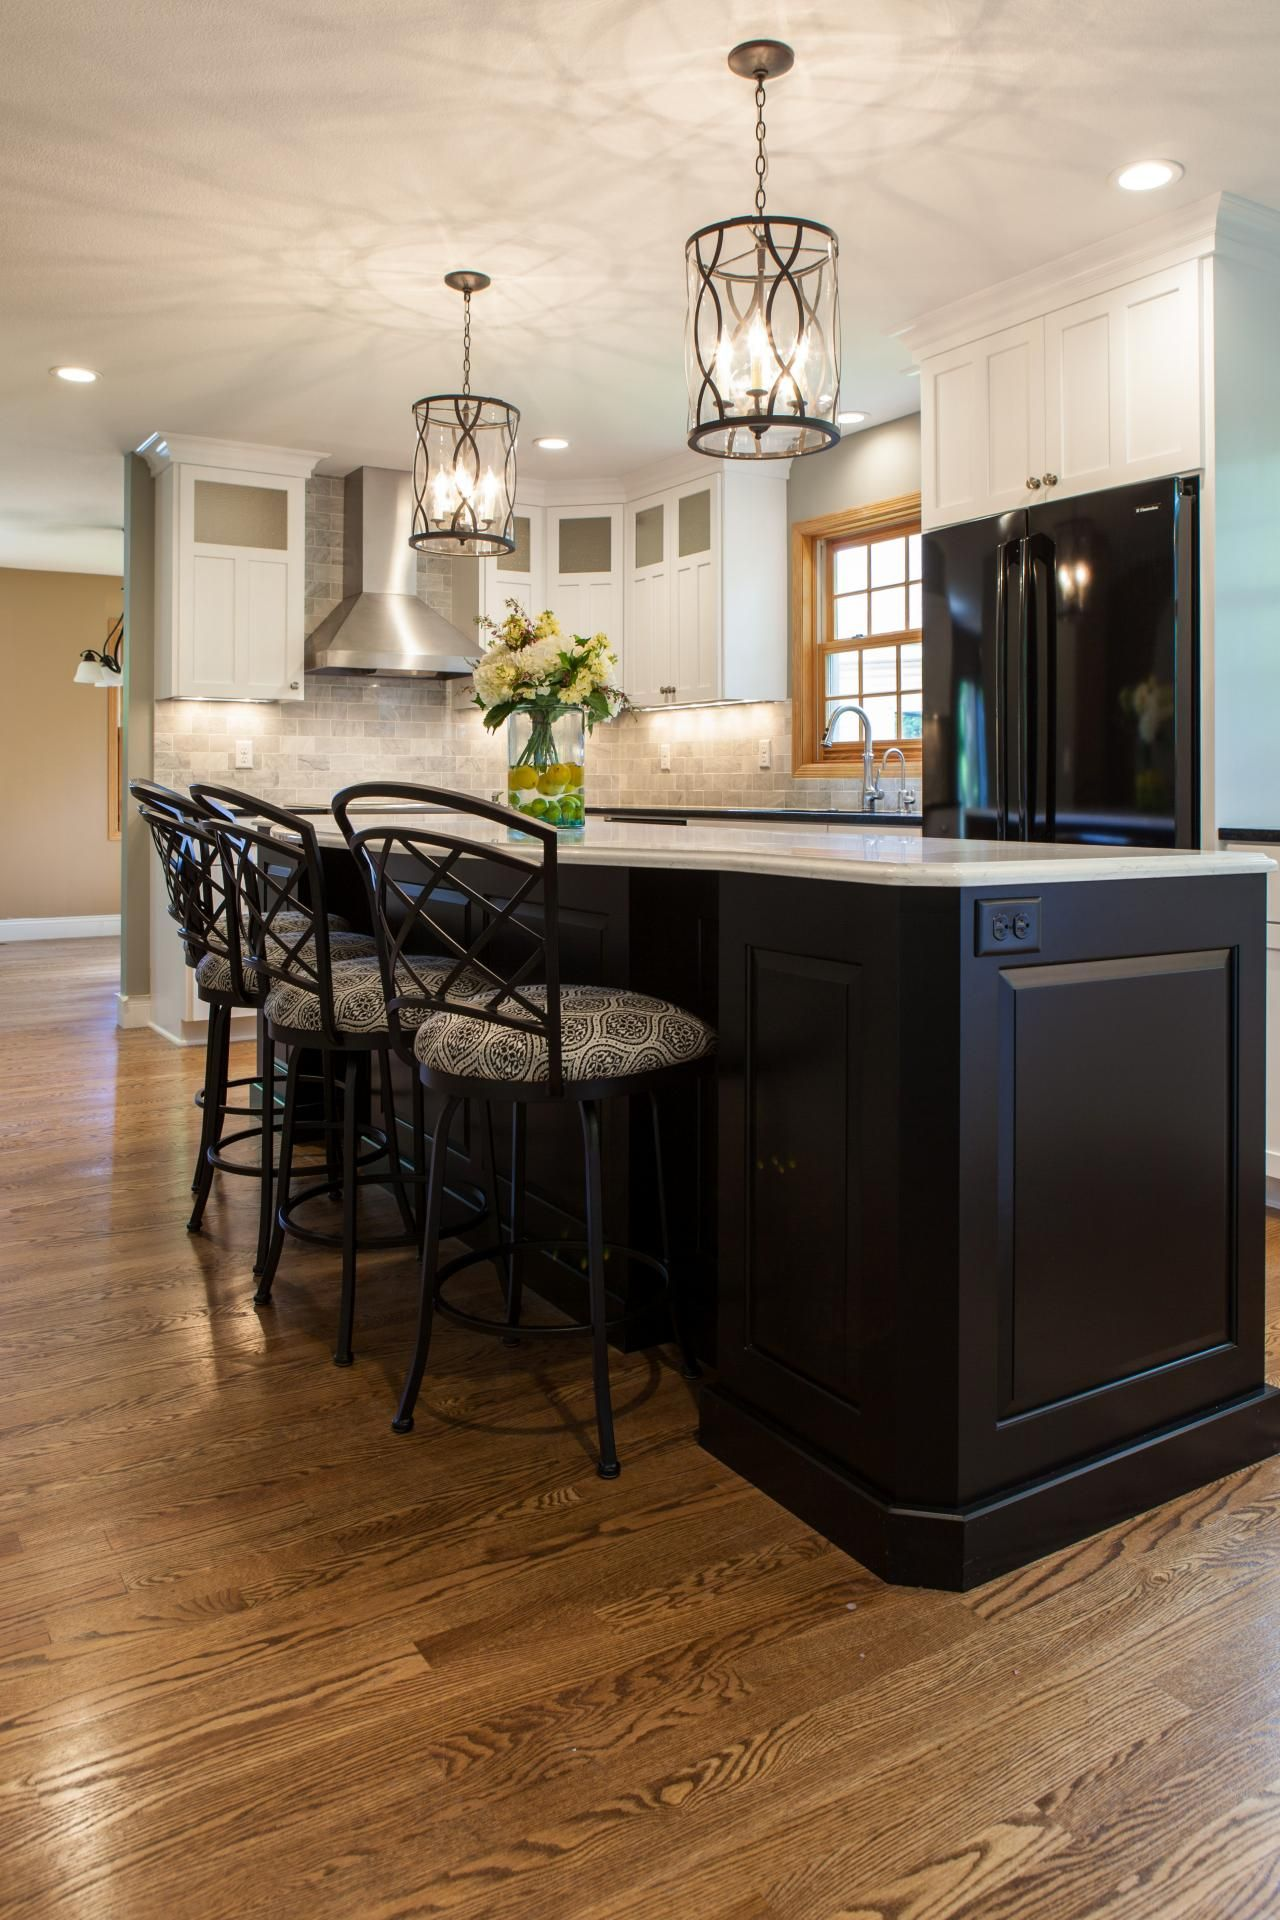 This clean and classic neutral kitchen boasts black